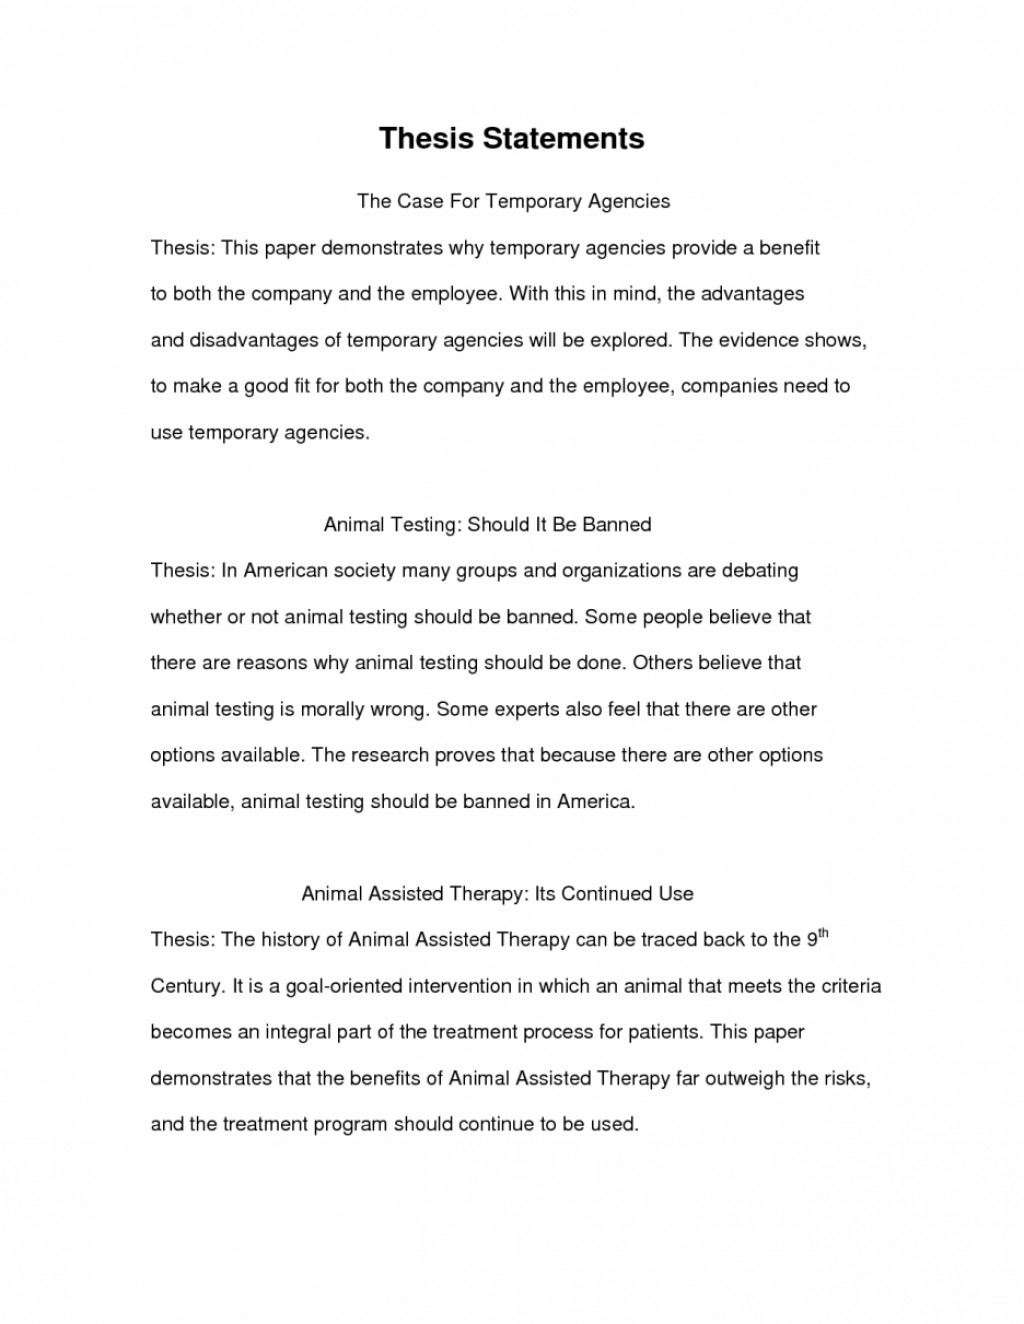 006 Writing Thesis Statements For Comparative Essays Historyamples Image Best Photos Research Paper How To Write Statement Essay Synthesis Personal Narrative Descriptive Persuasive 936x1211 Unique A An Exploratory Evaluation Good Analytical Large